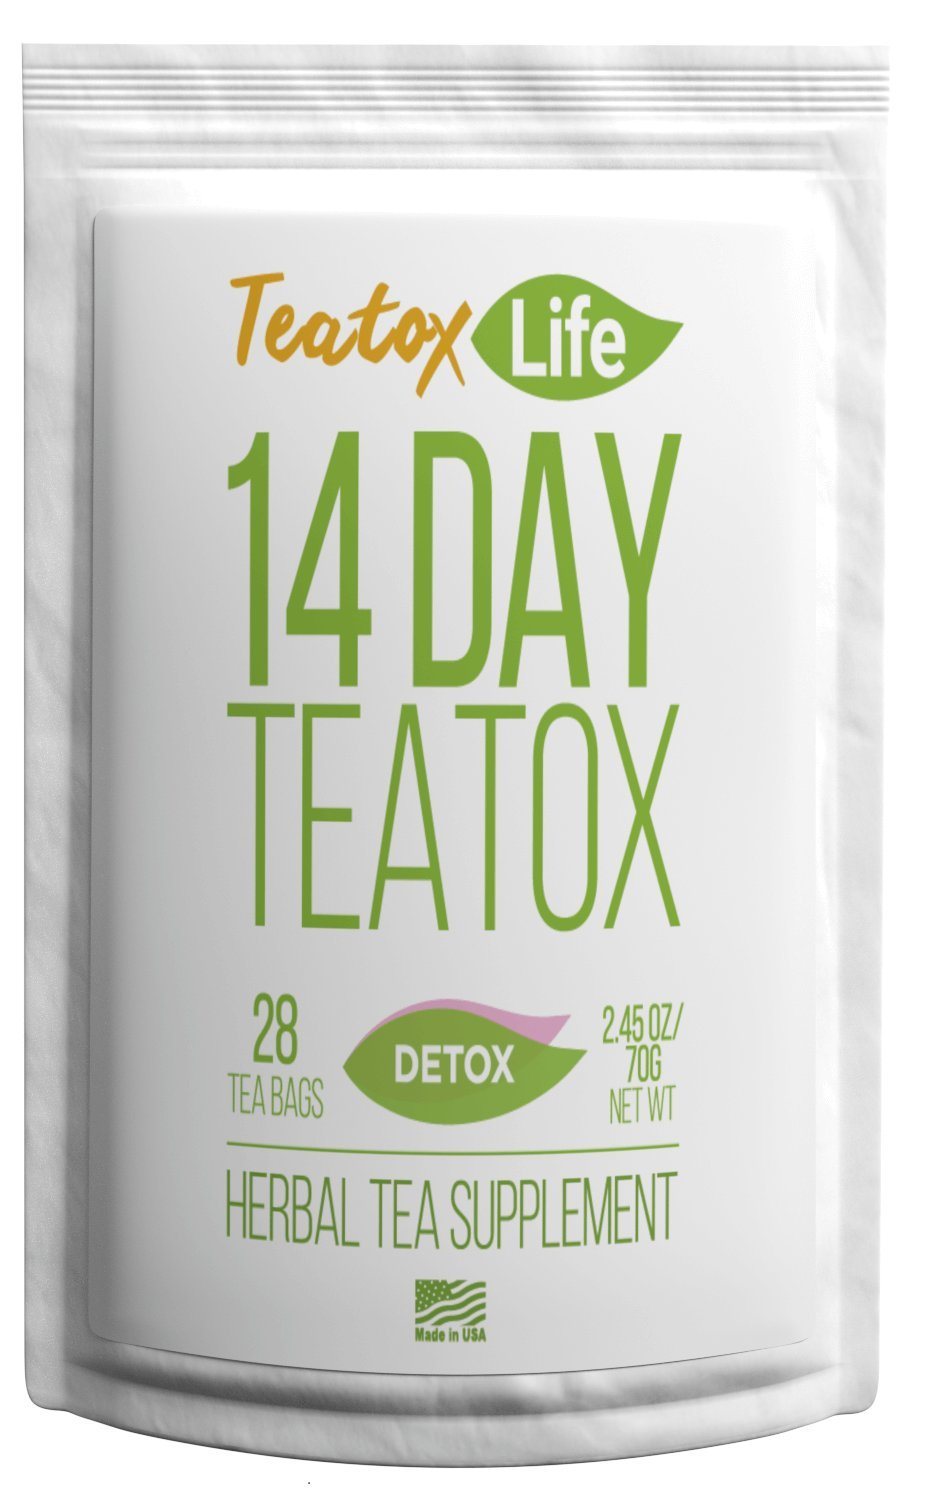 Teatox Life Detox Tea   Healthy Natural Weight Loss Slimming Tea For Women & Men   Organic 14 Day / 28 Day Body Cleansing Treatment   Metabolism Boosting Flat Tummy Tea